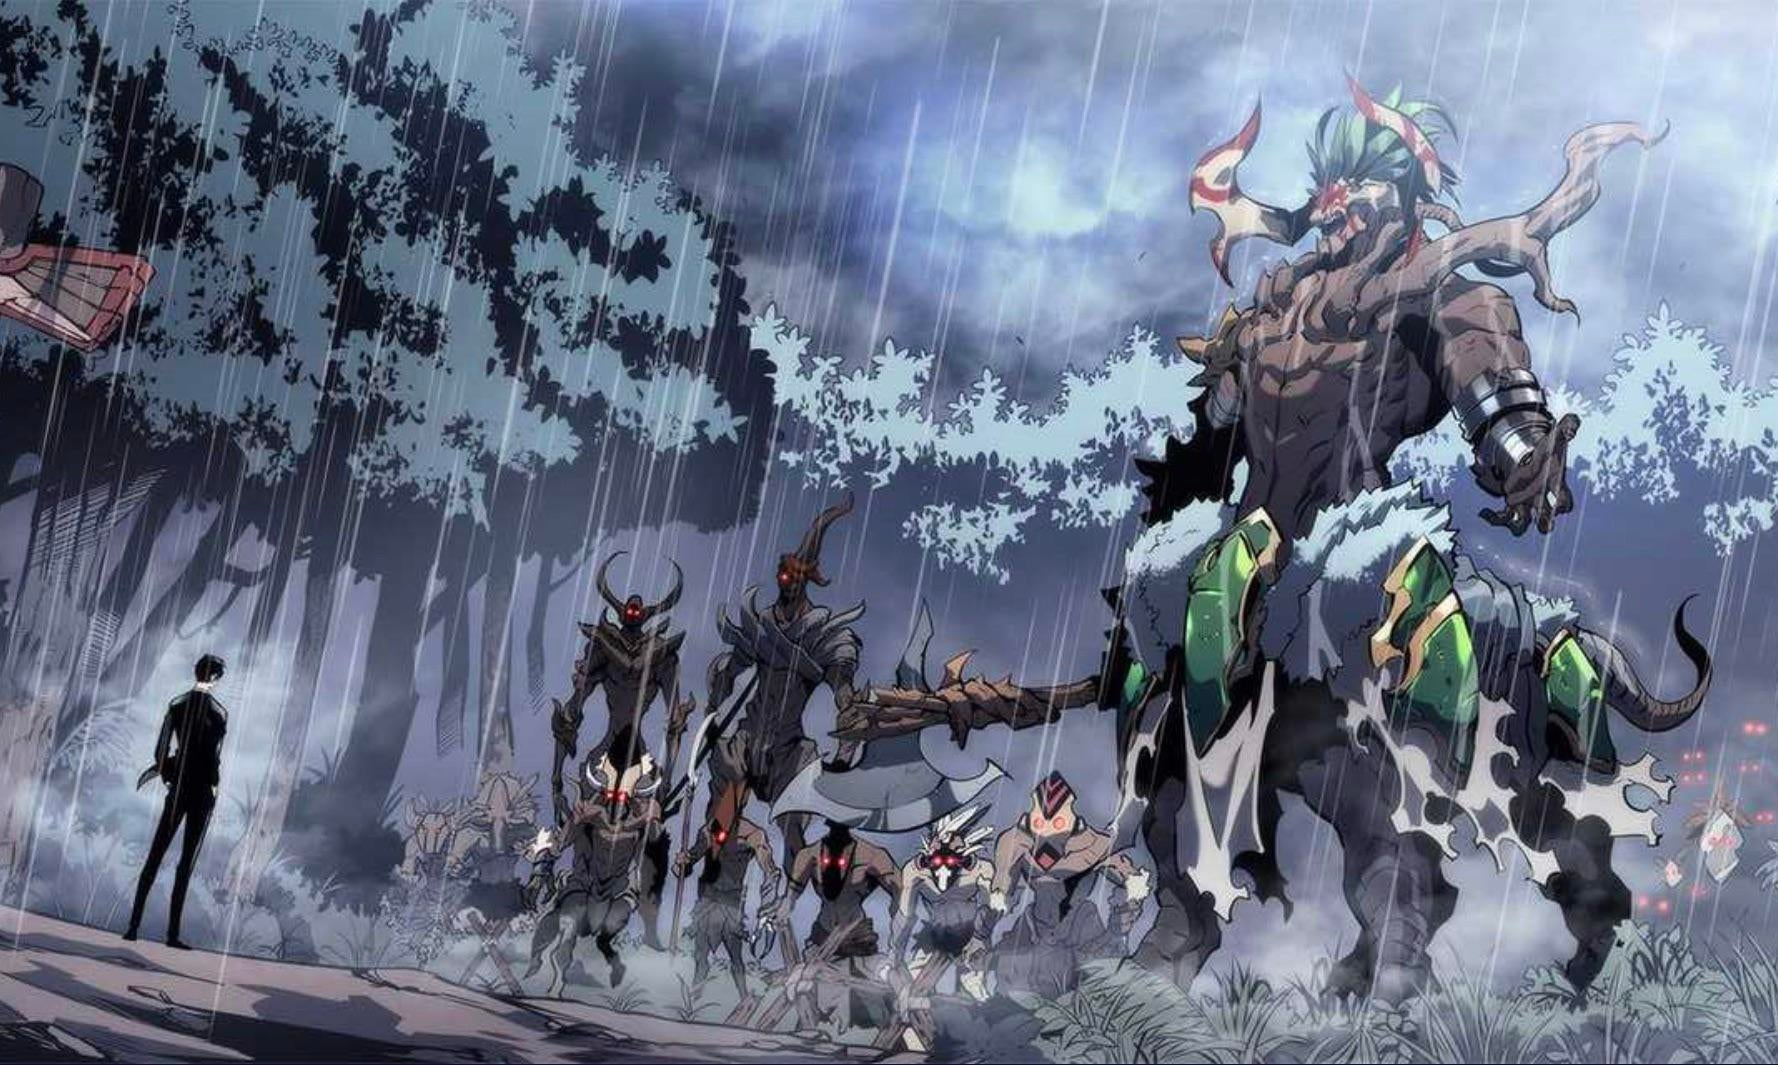 Solo Leveling Chapter 138 King of giants